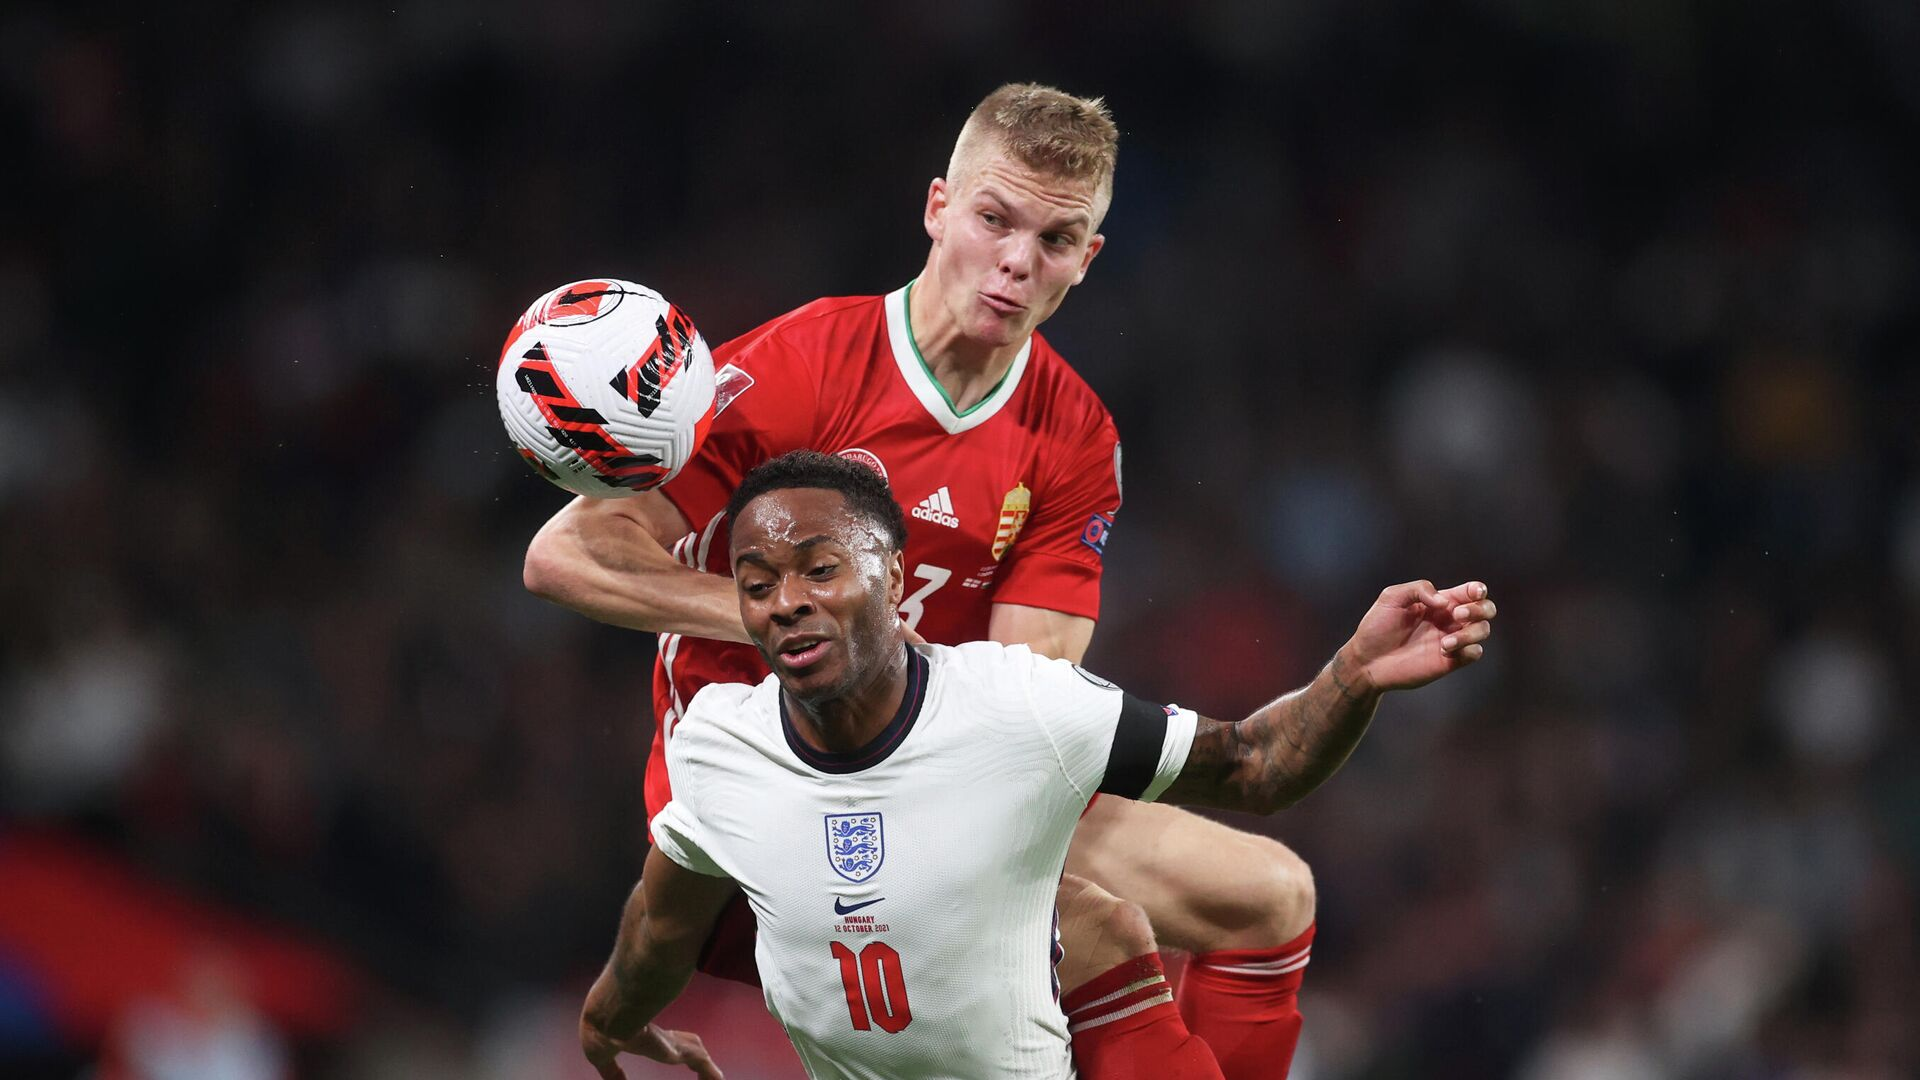 Soccer Football - World Cup - UEFA Qualifiers - Group I - England v Hungary - Wembley Stadium, London, Britain - October 12, 2021 Hungary's Andras Schafer in action with England's Raheem Sterling Action Images via Reuters/Carl Recine - РИА Новости, 1920, 13.10.2021